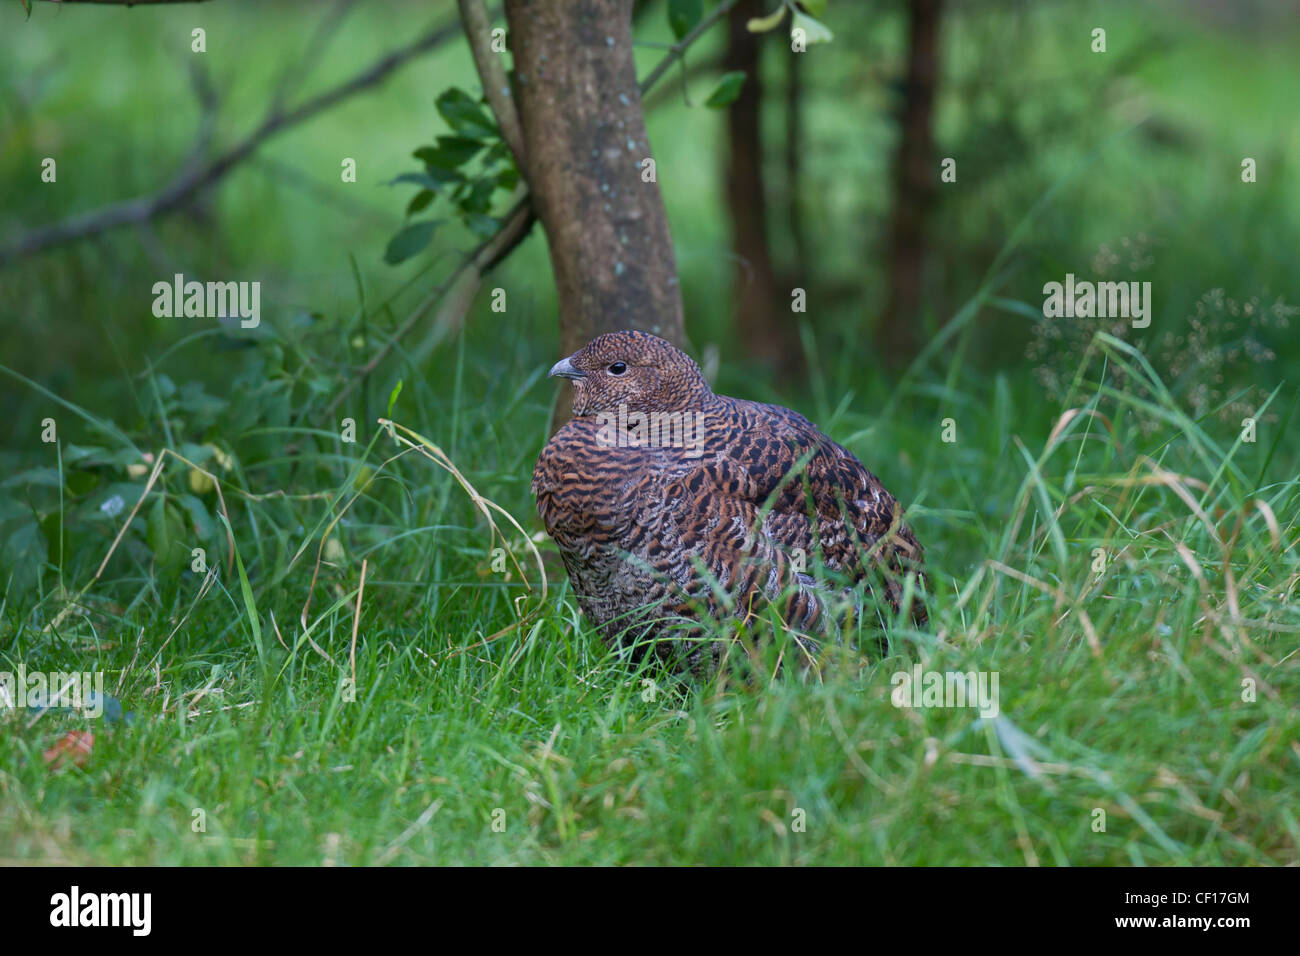 Black Grouse Blackgame birkhuhn tetrao tetrix - Stock Image